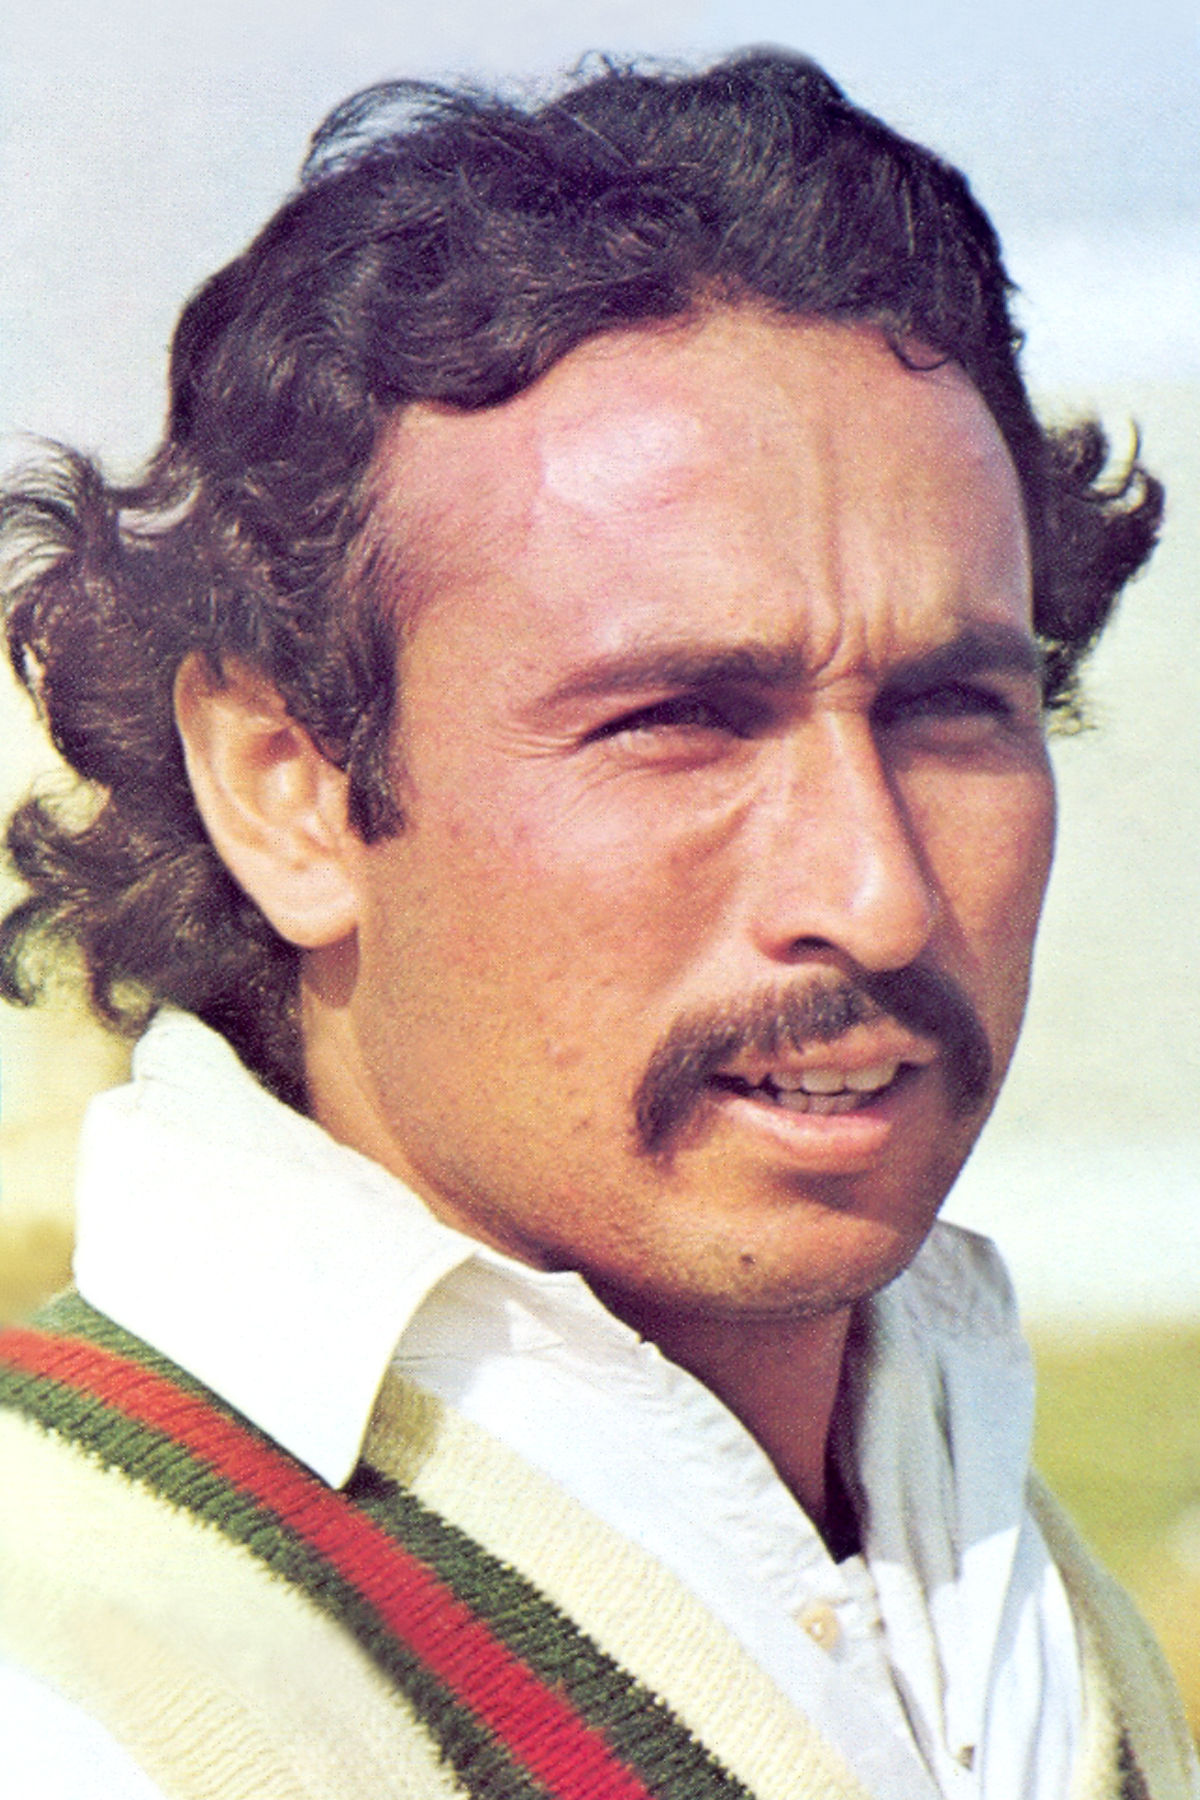 Pakistan's Jalaluddin was the first bowler to take a hat trick in ODI cricket